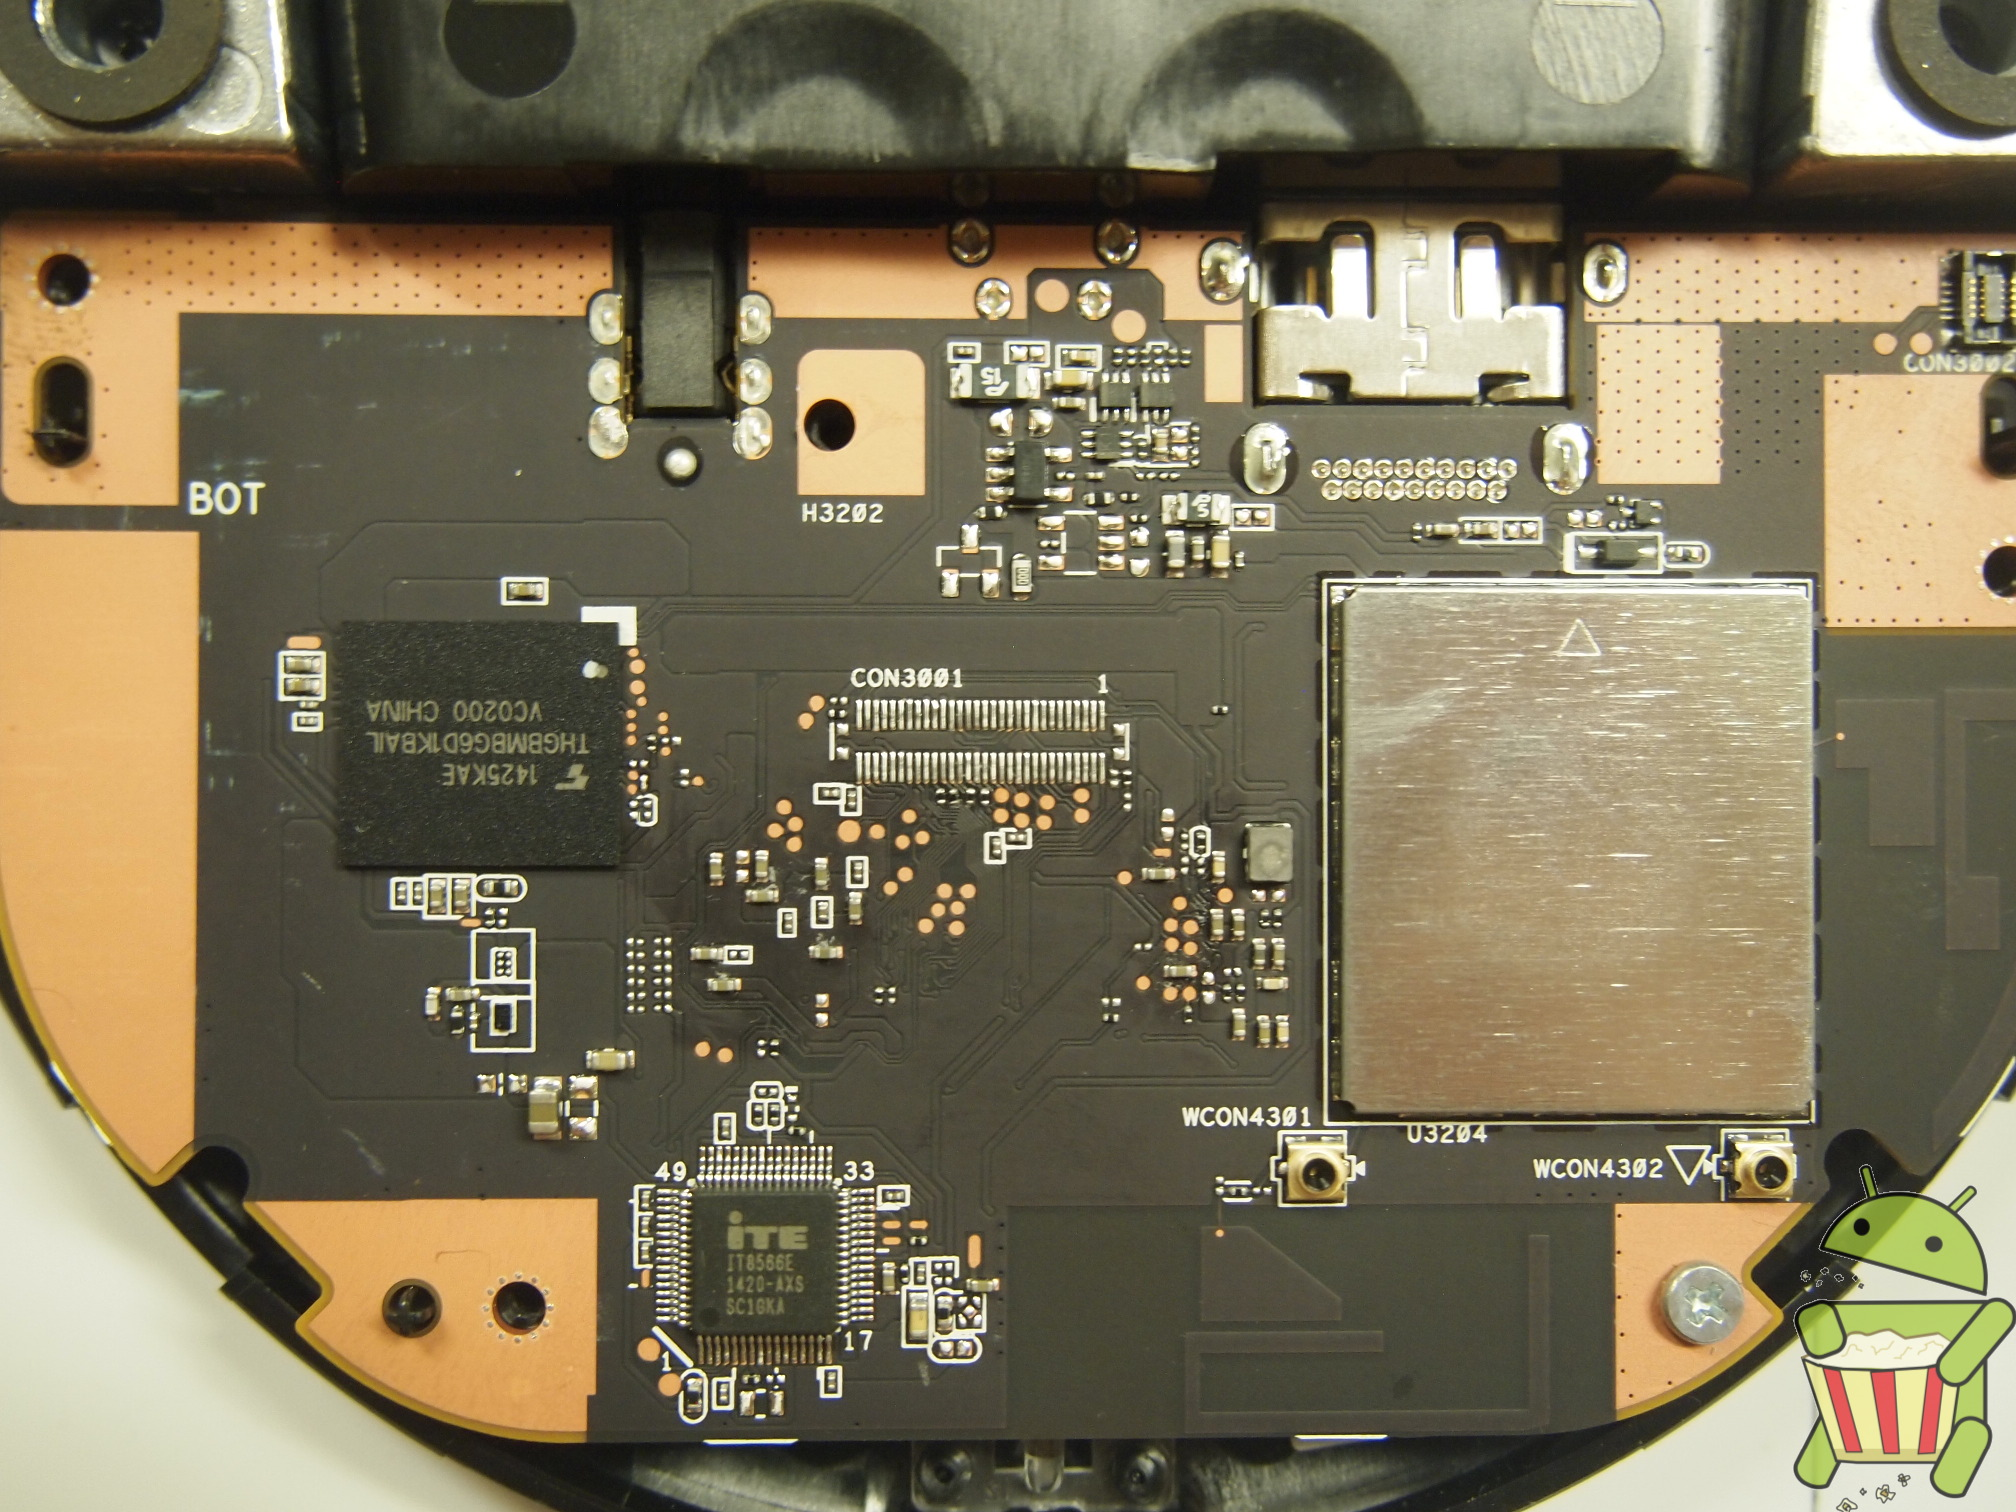 NP-Case-Open-Heatsink-Removed-Bottom-Zoom.jpg